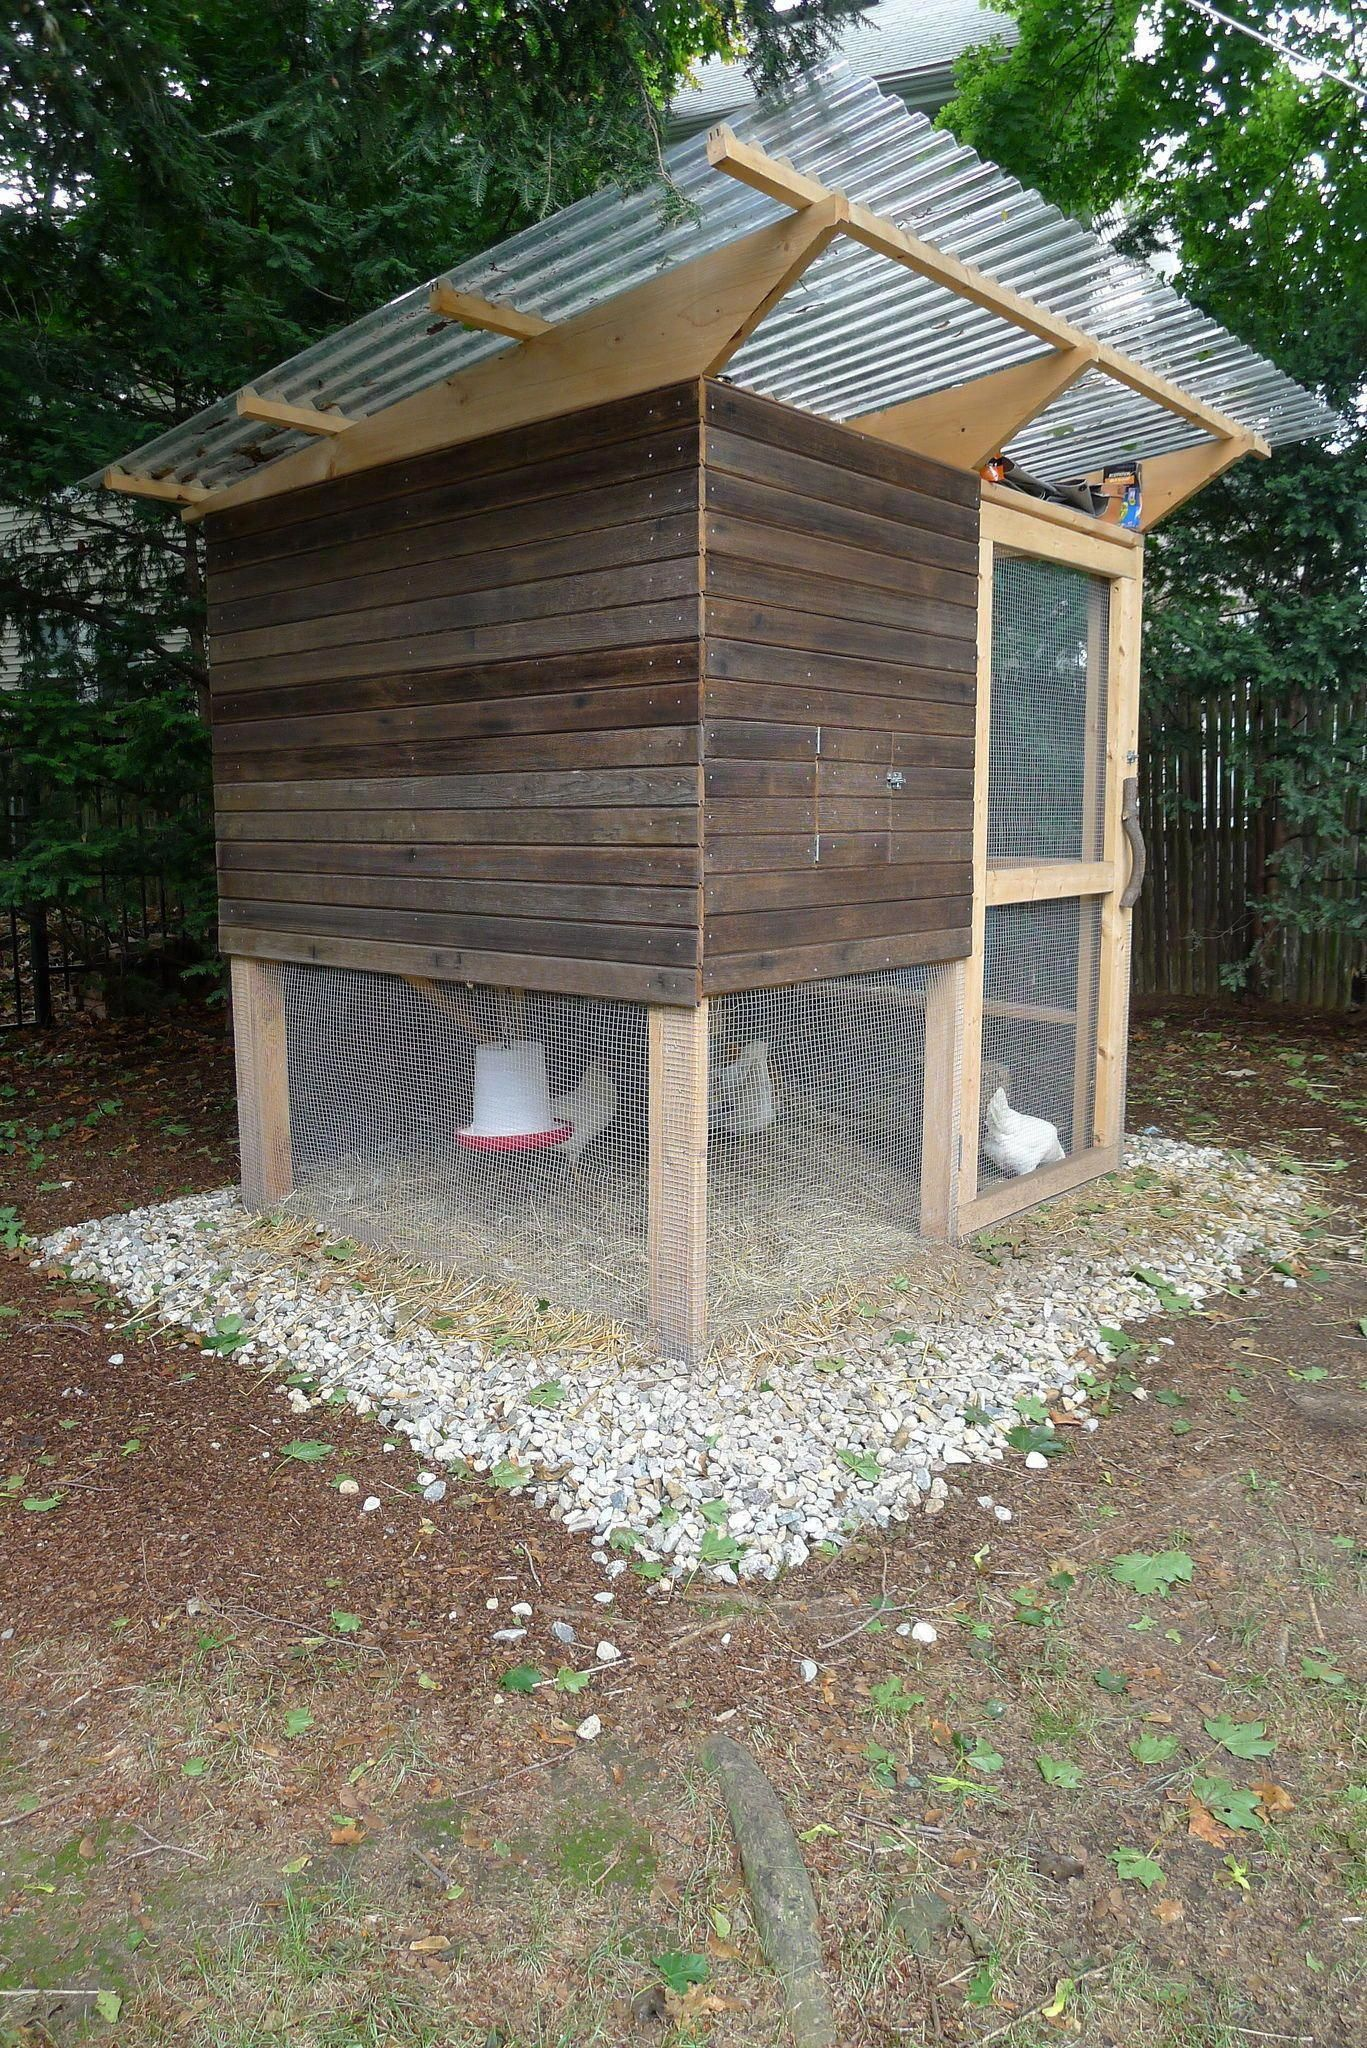 Chicken Coop Plans You Can DIY This Weekend - The Spruce # ...